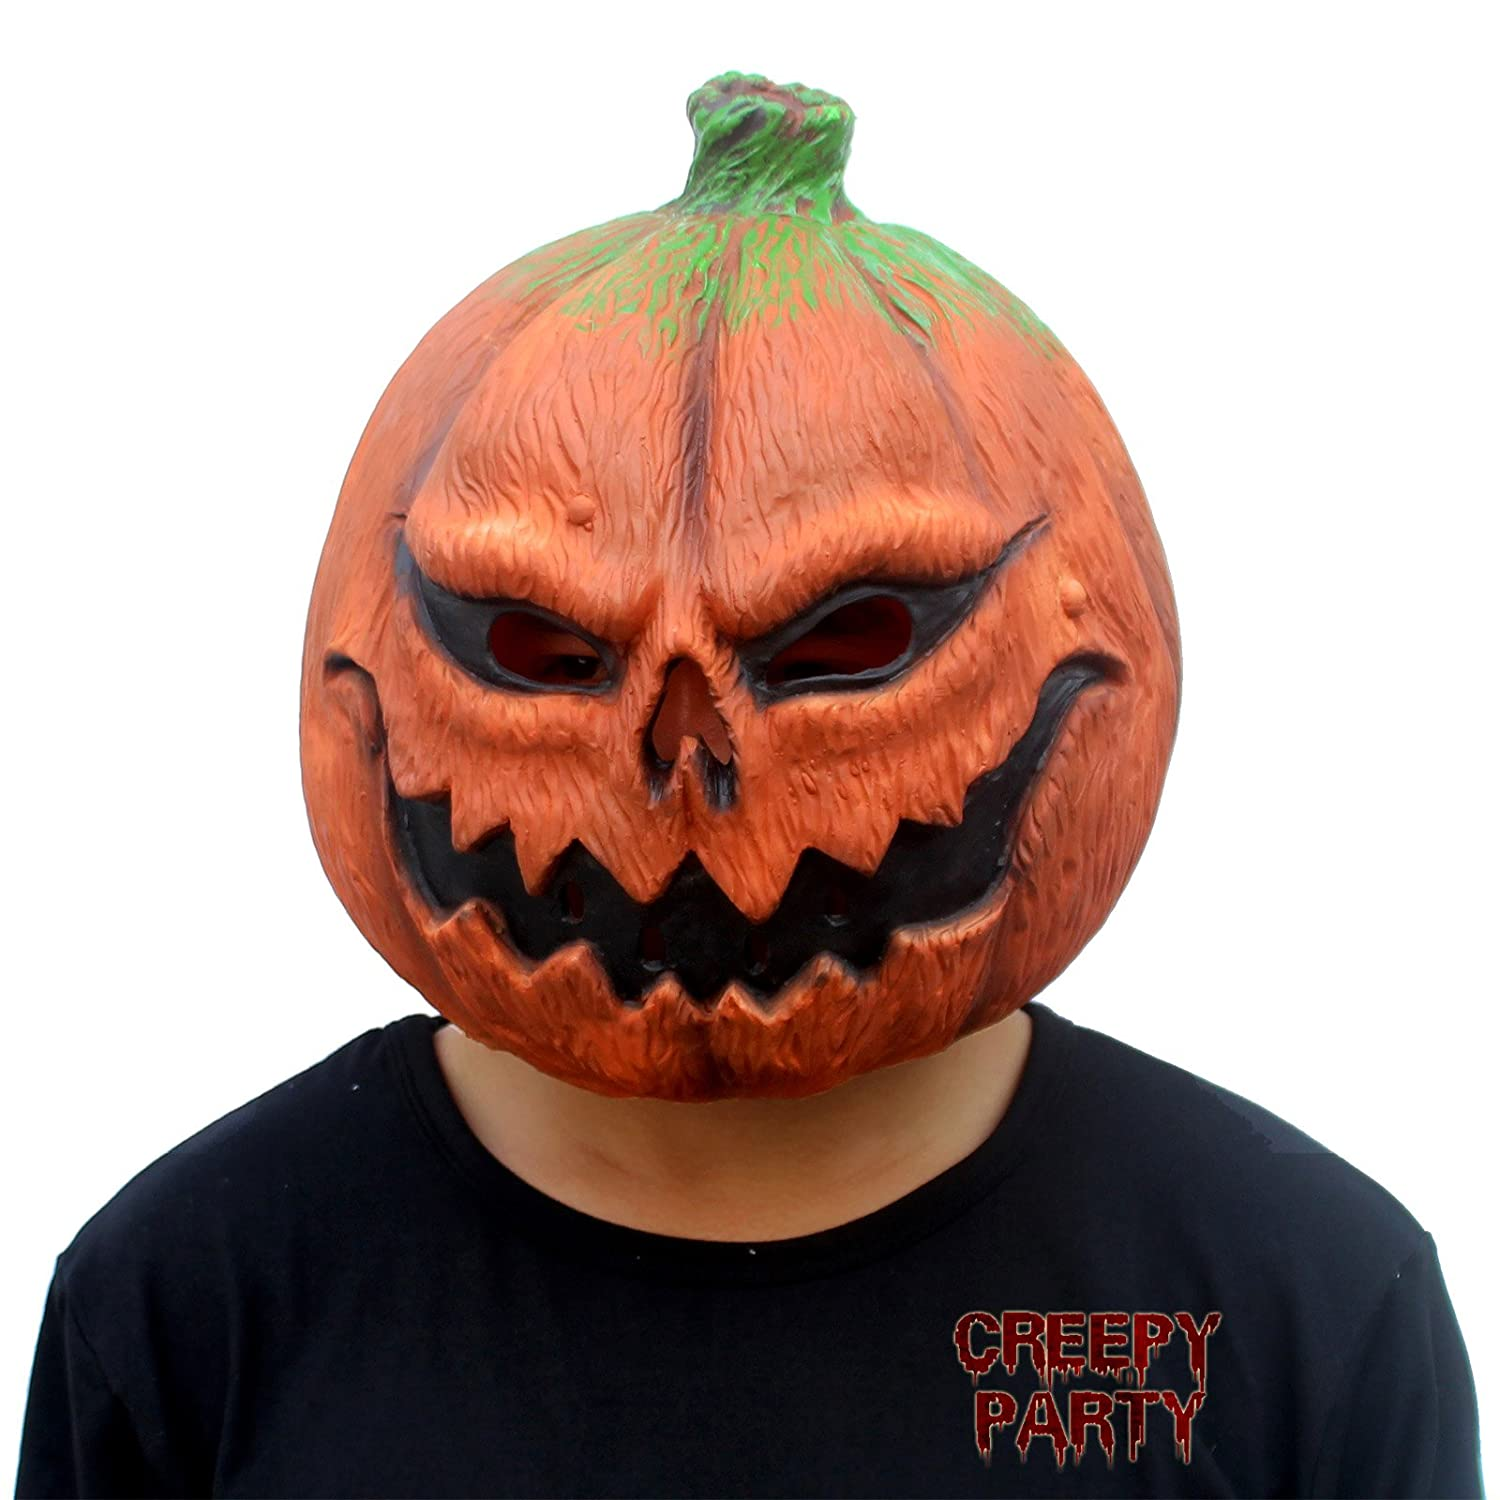 CreepyParty Deluxe Novelty Halloween Costume Party Props Latex Pumpkin Head Mask Seaton STMask